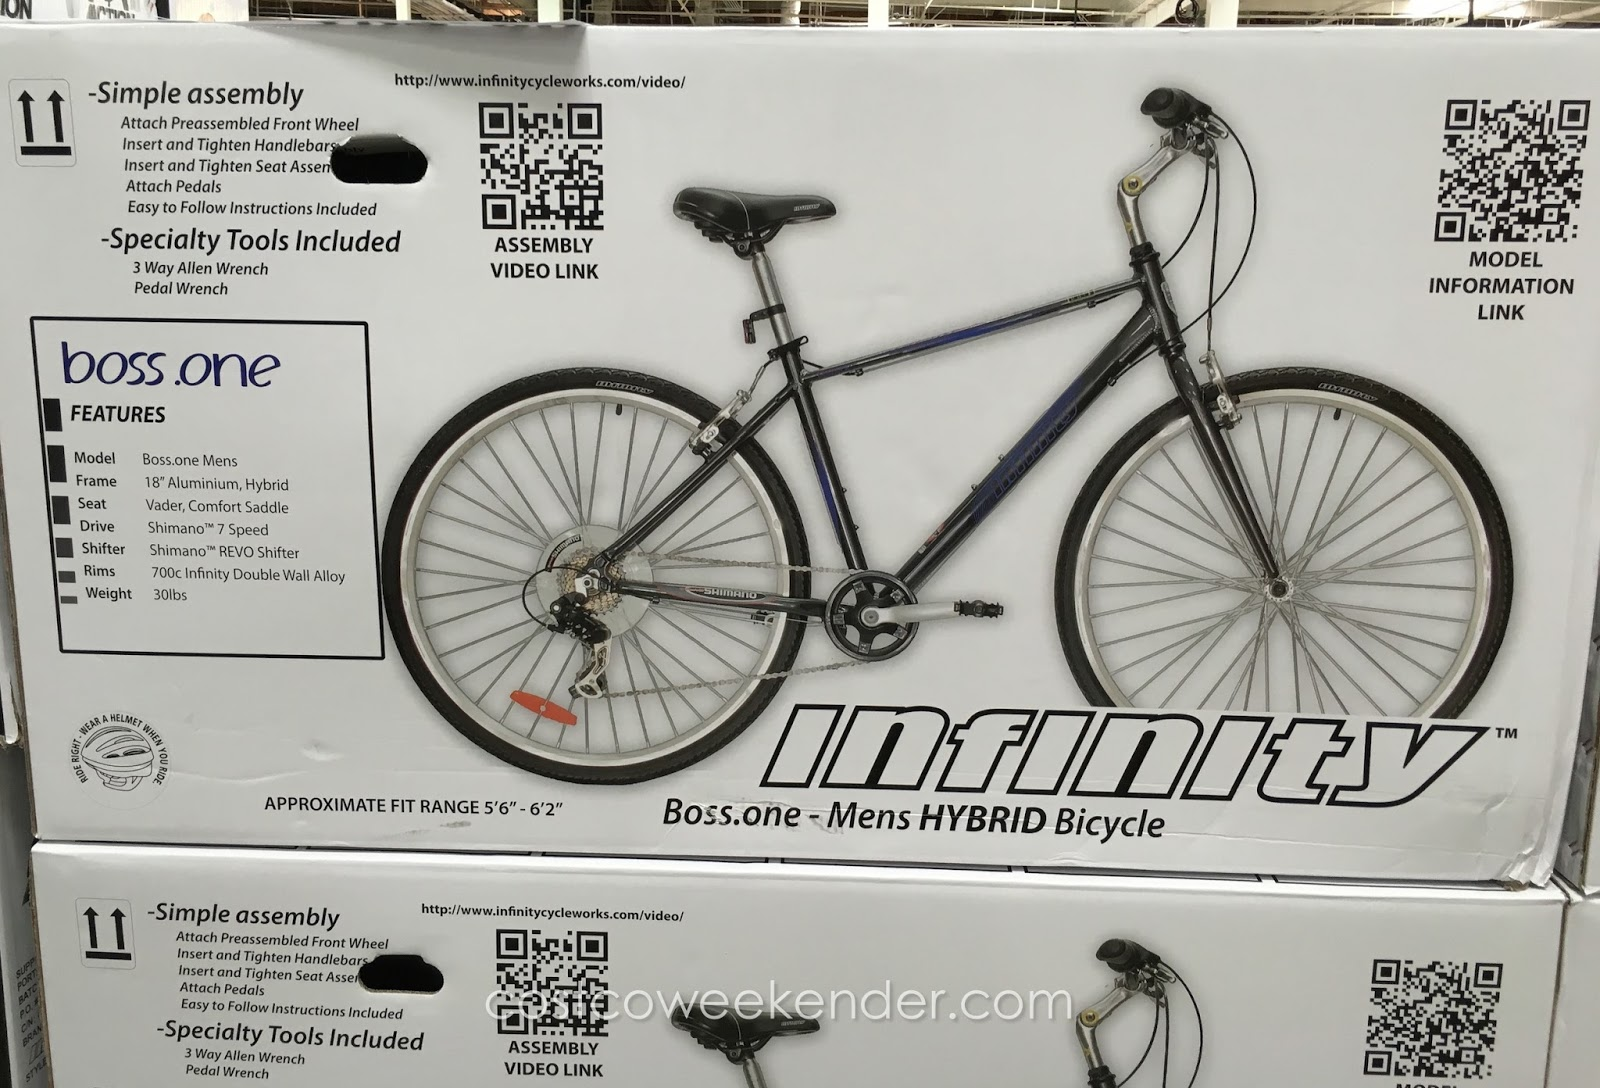 Costco 1014315 Infinity Boss One Mens 7 Sd Hybrid Bike Great For